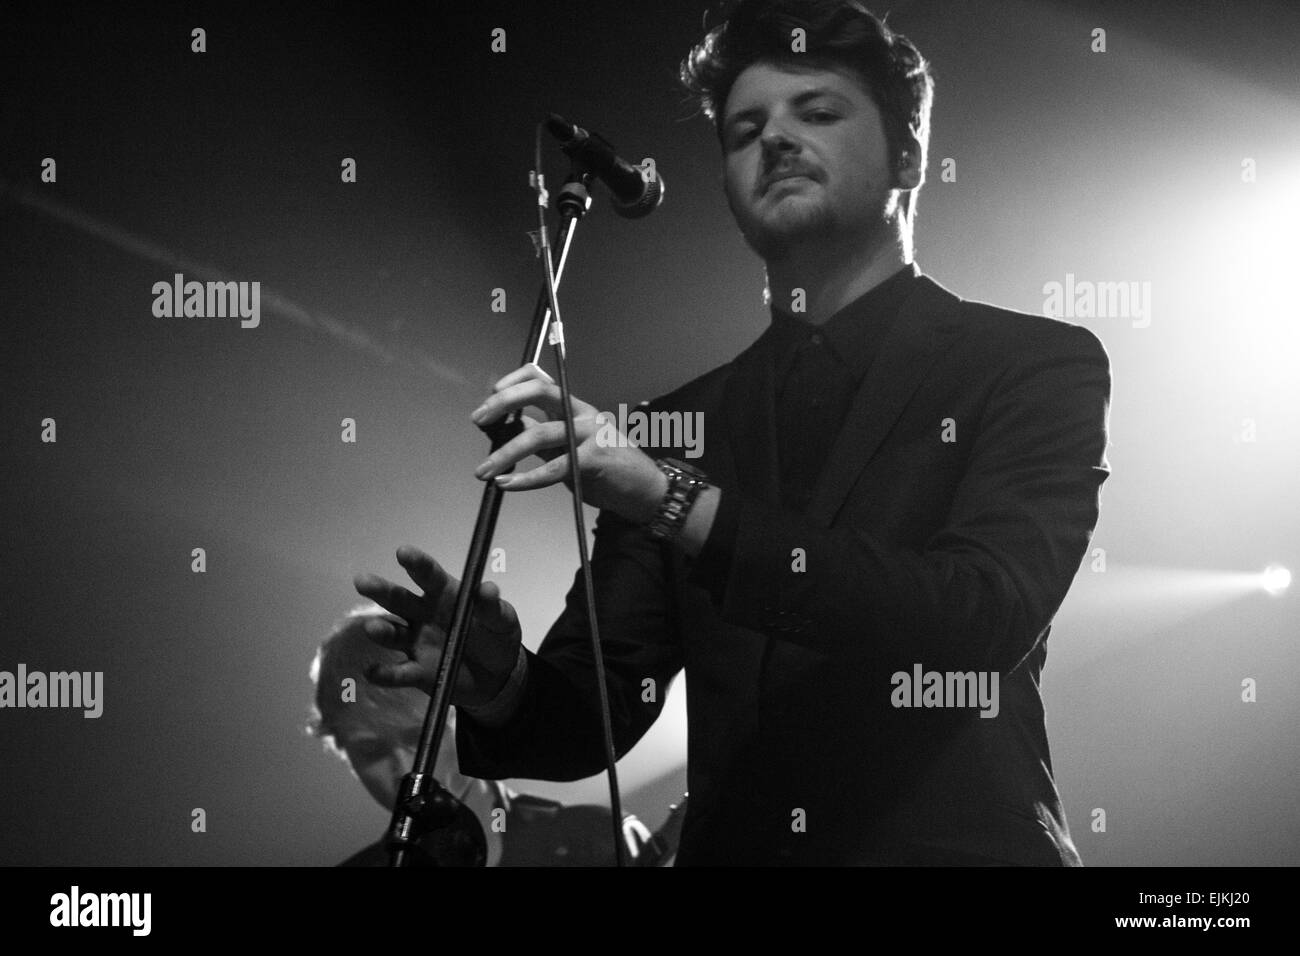 Man posed in between singing in a band and looking directly at the camera almost playing the microphone as if it's - Stock Image